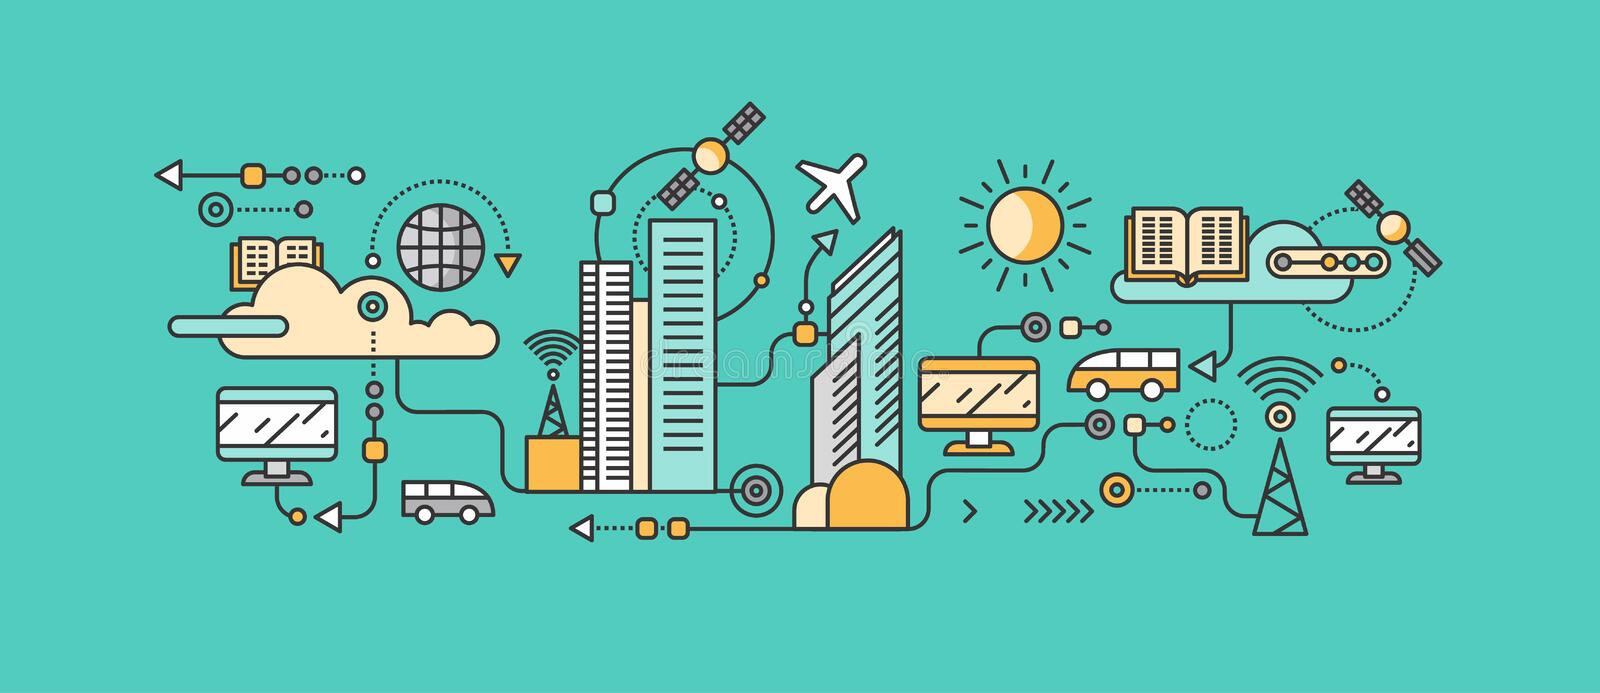 Smart Technology in Infrastructure of the City vector illustration